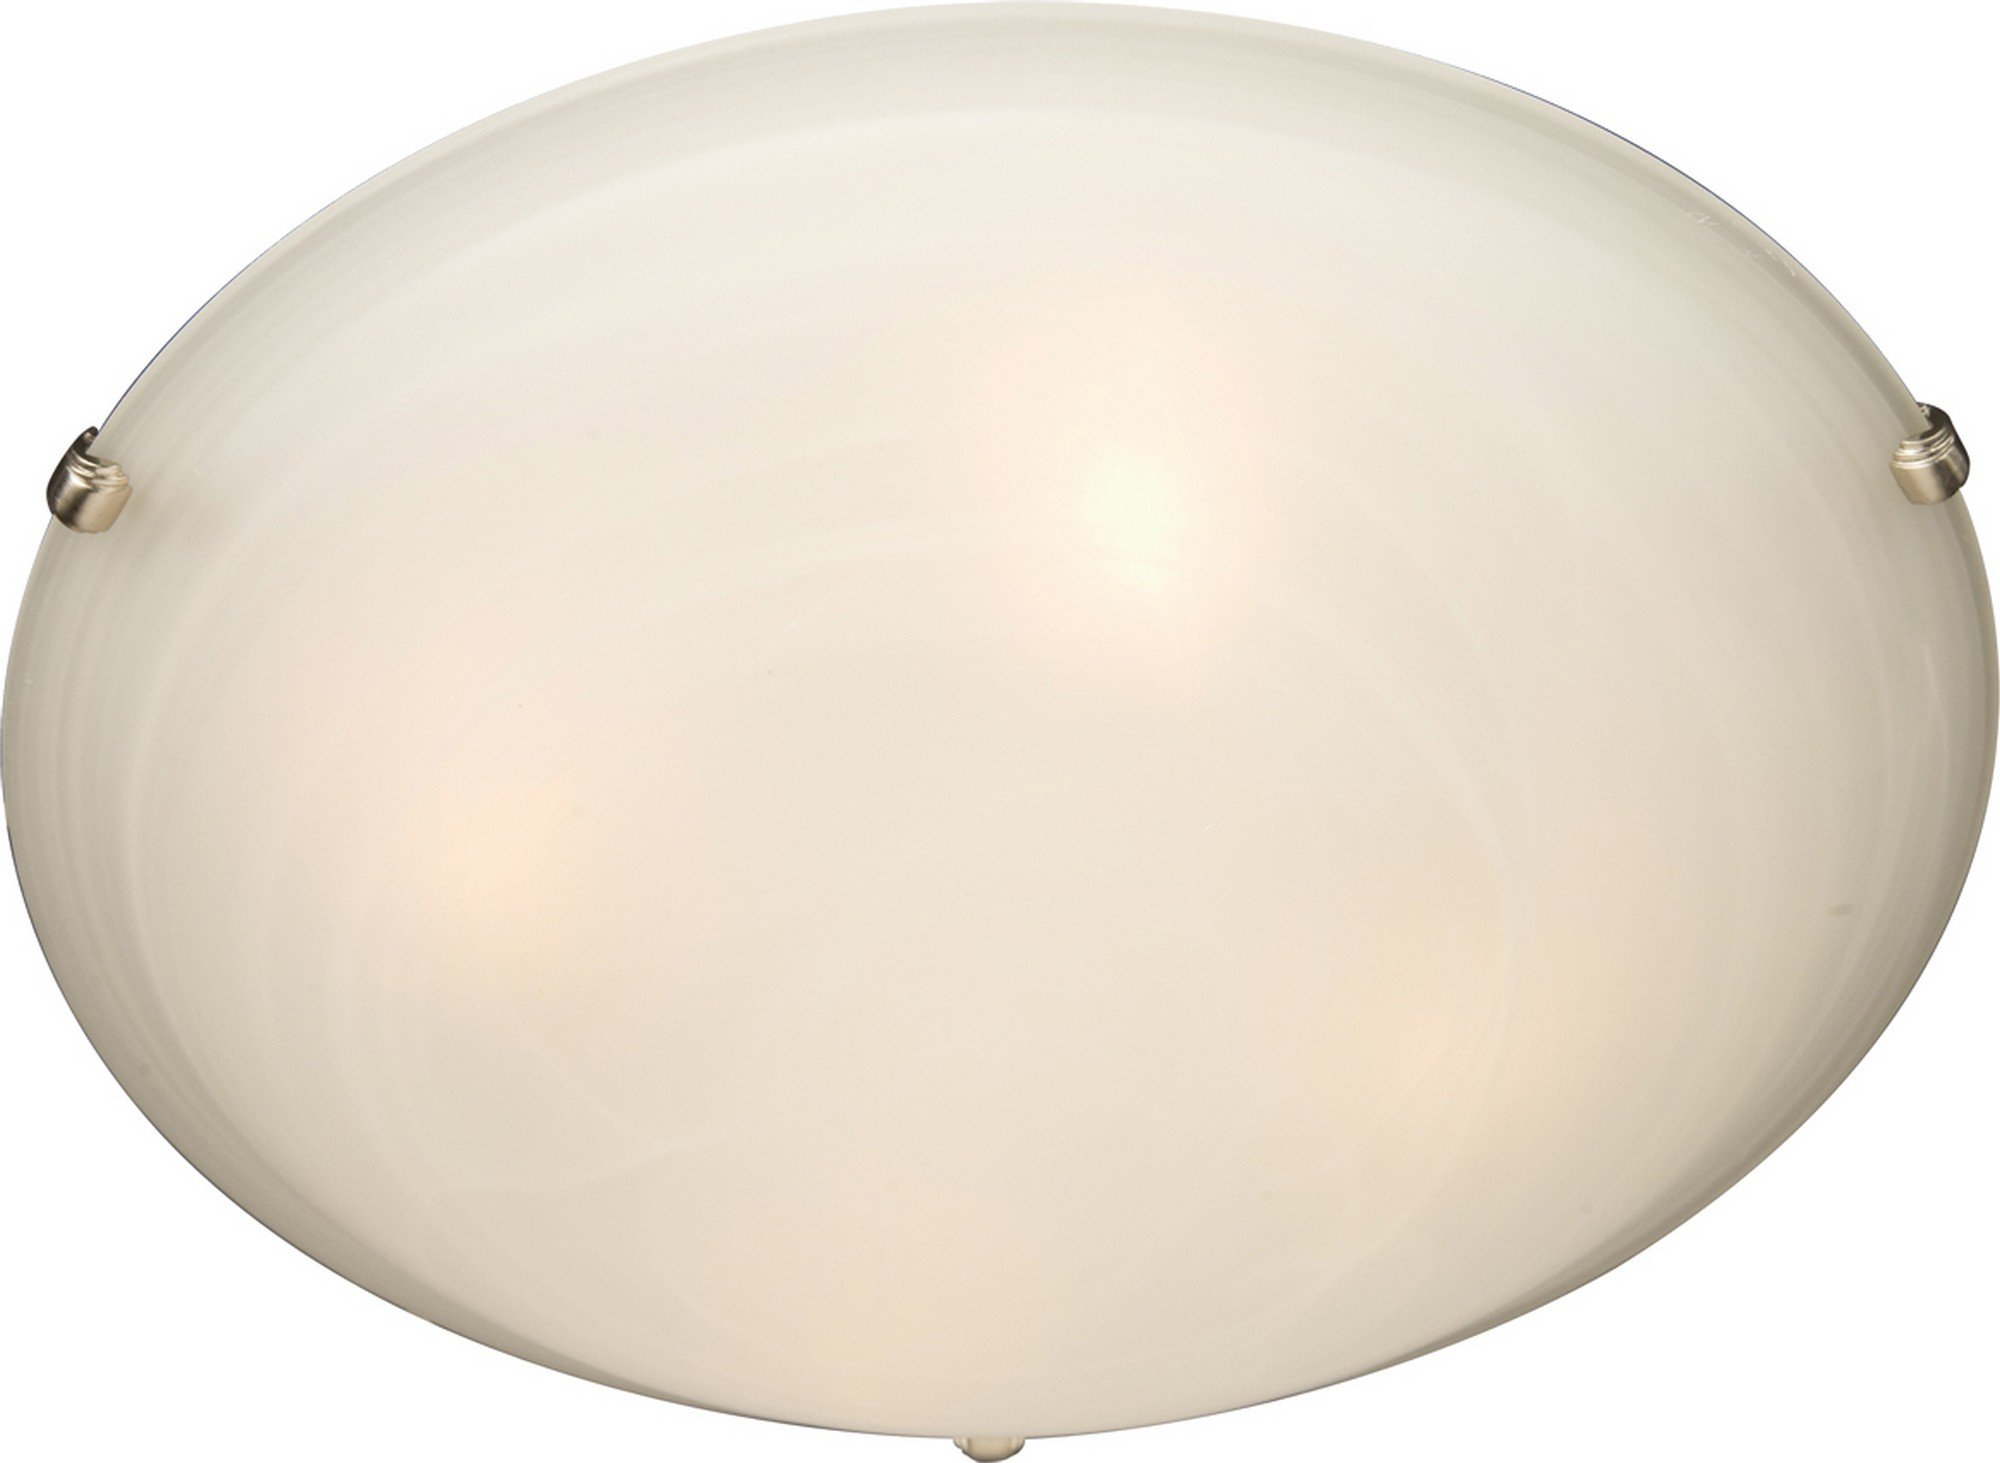 Maxim 2680MRSN Malaga 2-Light Flush Mount, Satin Nickel Finish, Marble Glass, MB Incandescent Incandescent Bulb, 60W Max, Dry Safety Rating, Standard Dimmable, Glass Shade Material, Rated Lumens